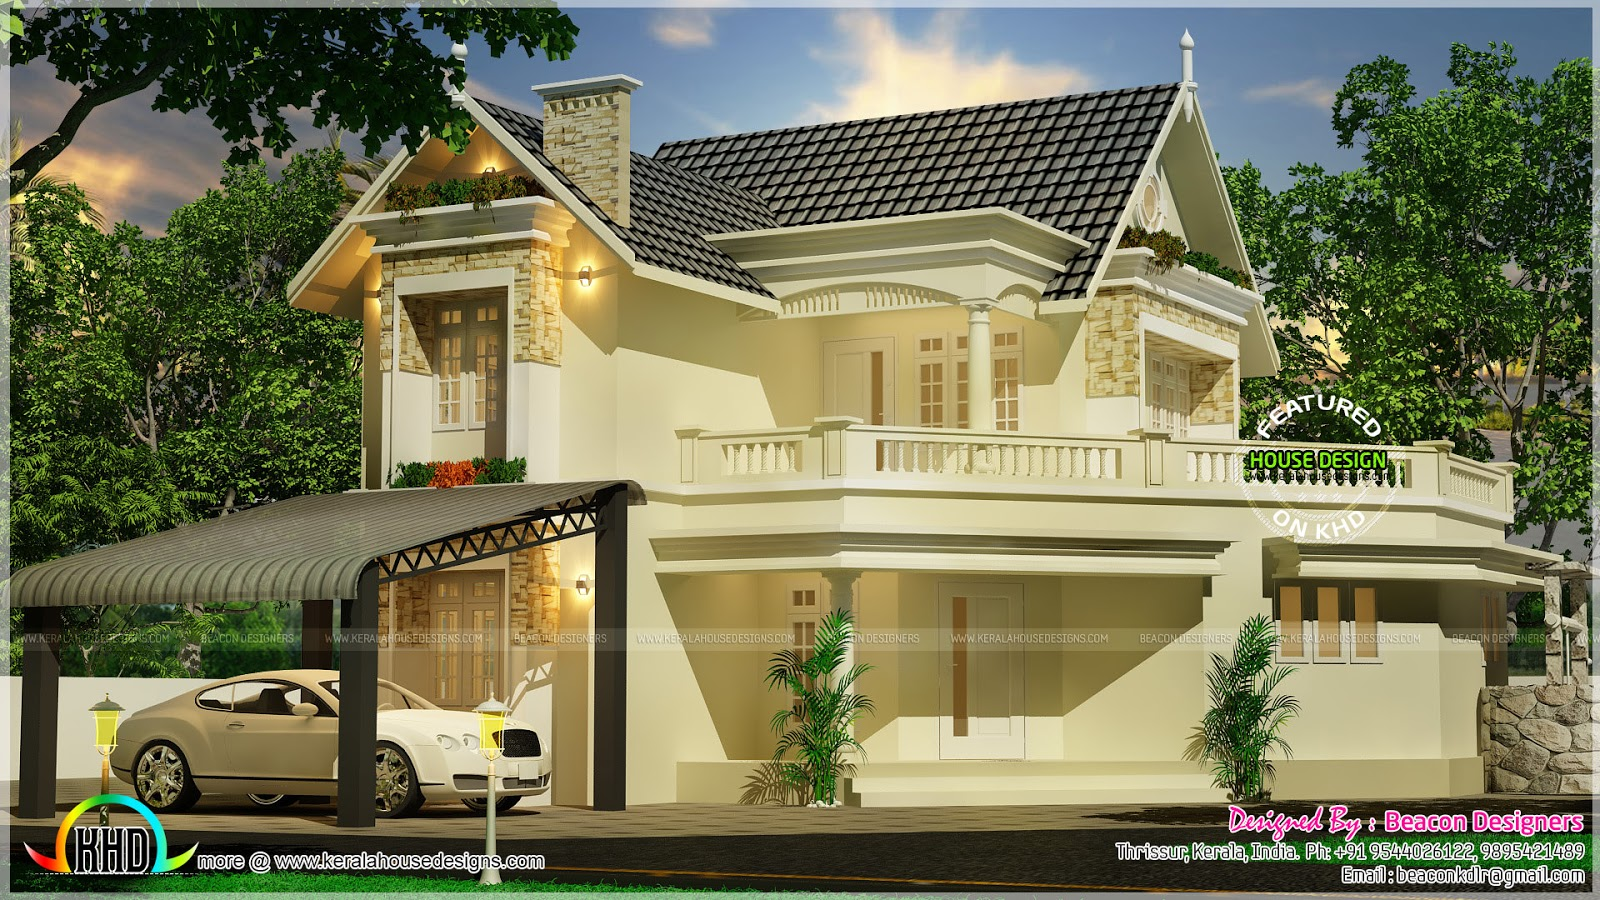 Beautiful swiss model house design kerala home design and floor plans - Swiss style house plans ...